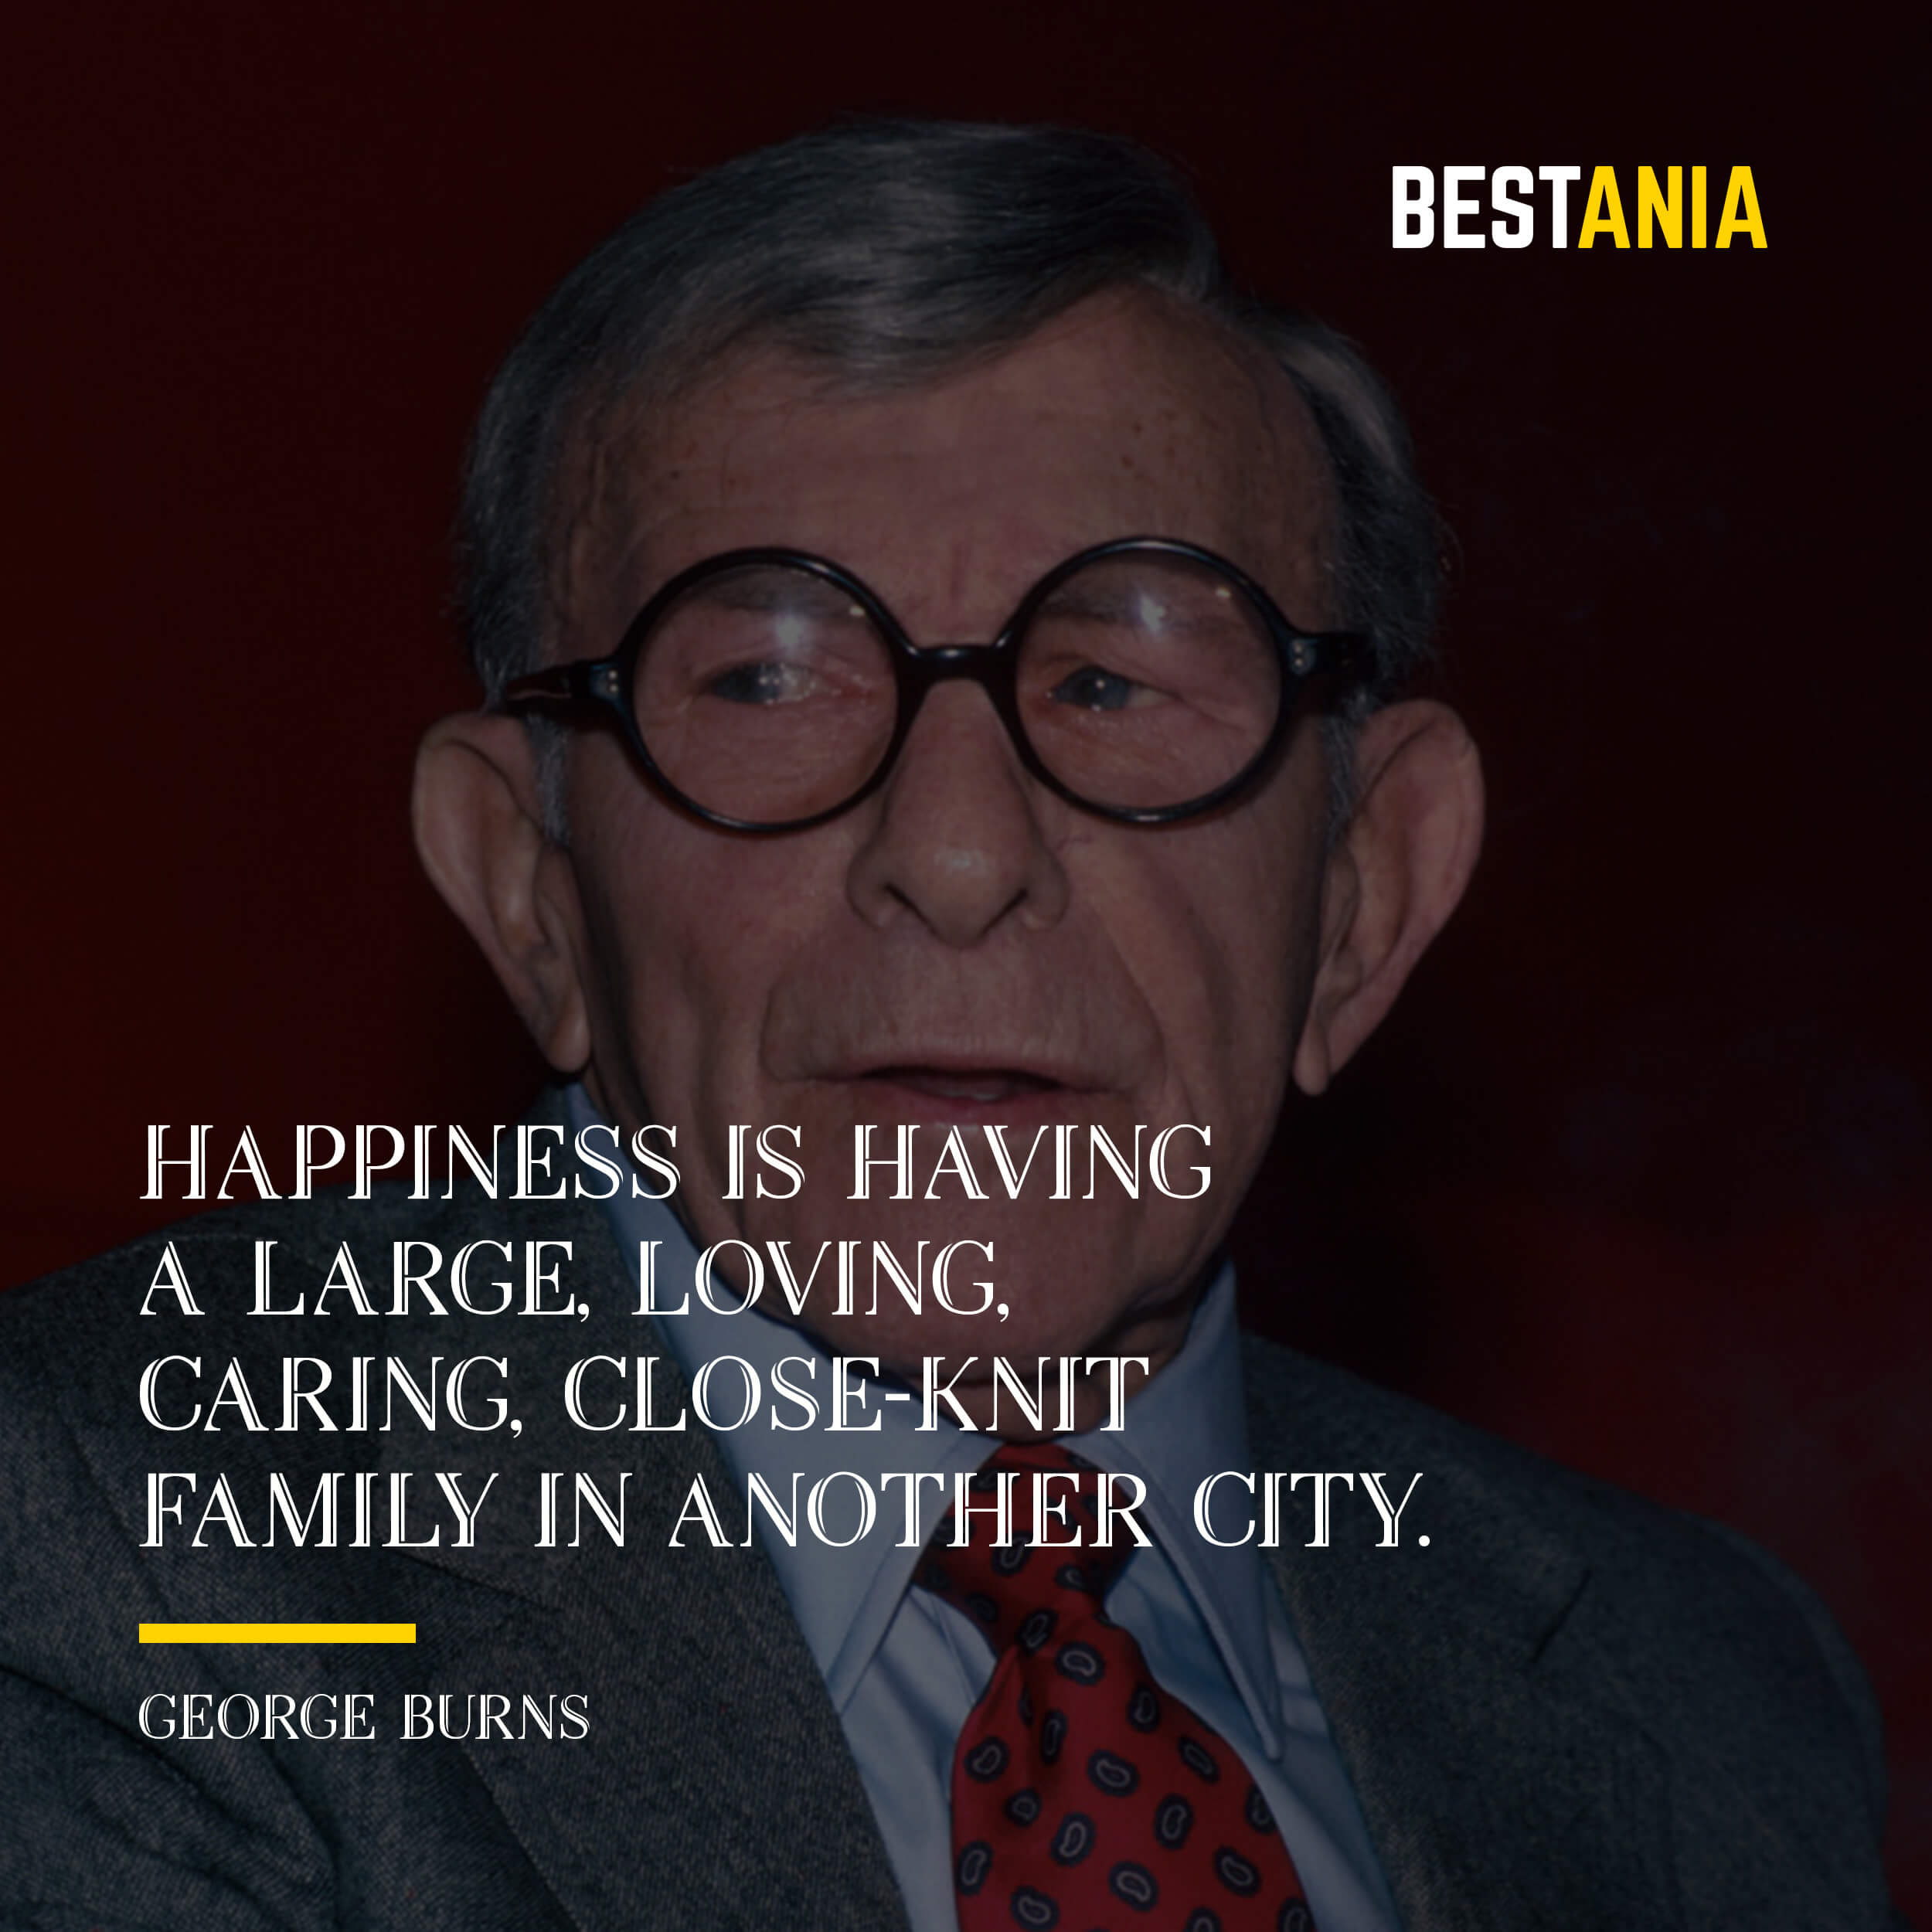 """HAPPINESS IS HAVING A LARGE, LOVING, CARING, CLOSE-KNIT FAMILY IN ANOTHER CITY.""  GEORGE BURNS"